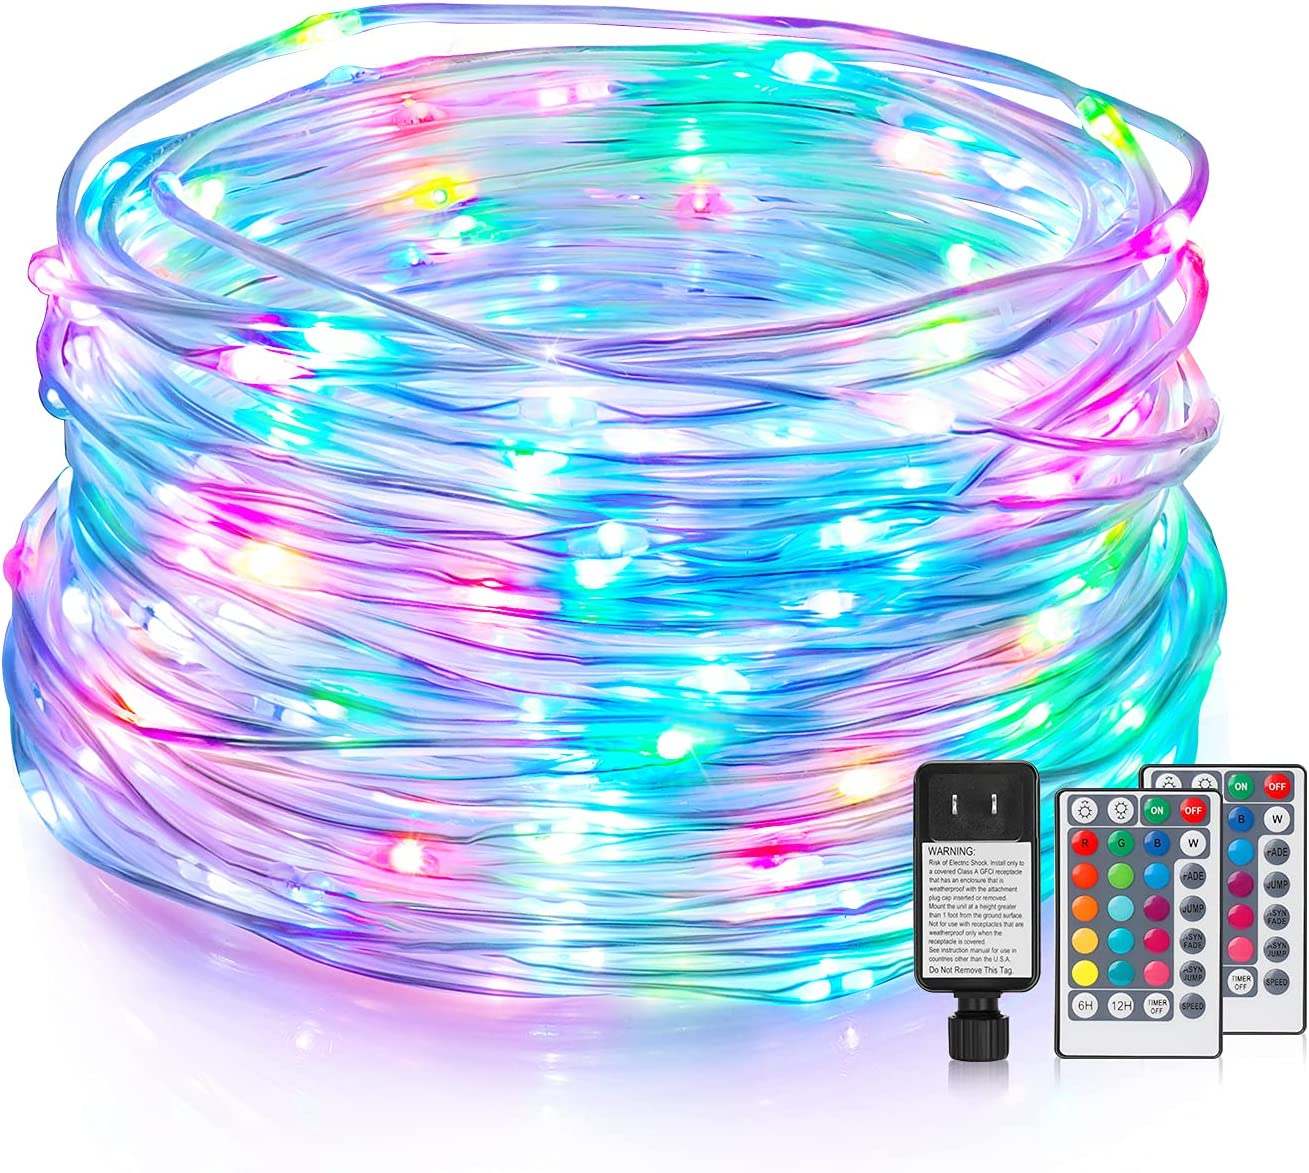 Fixed price for sale 118FT LED Rope Lights gift Outdoor Colorful 16 Lig RGB String